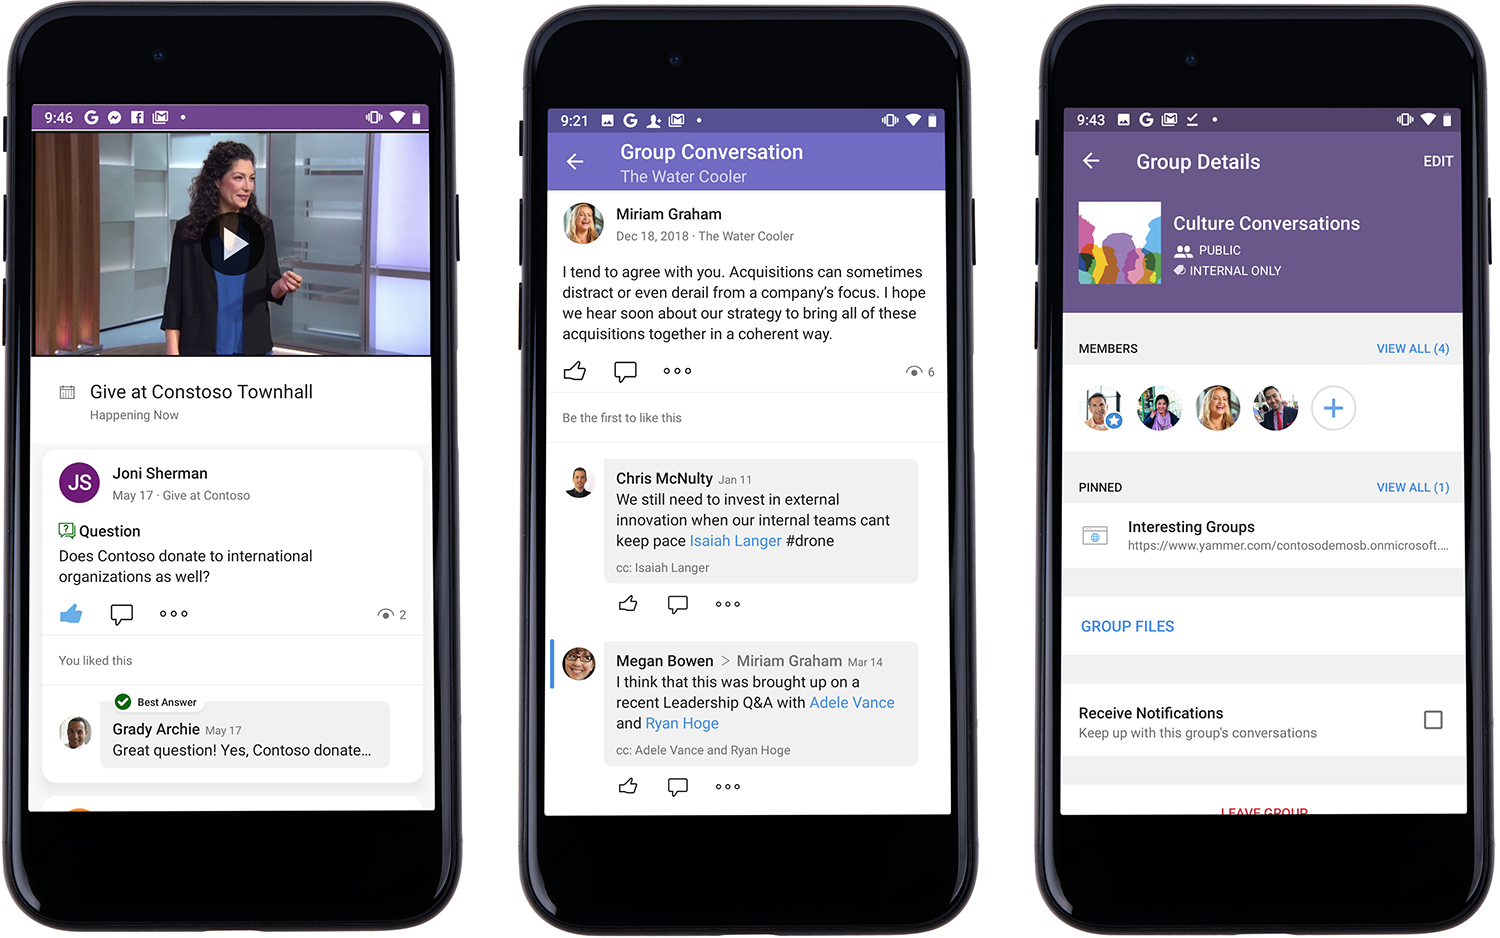 Yammer mobile experience